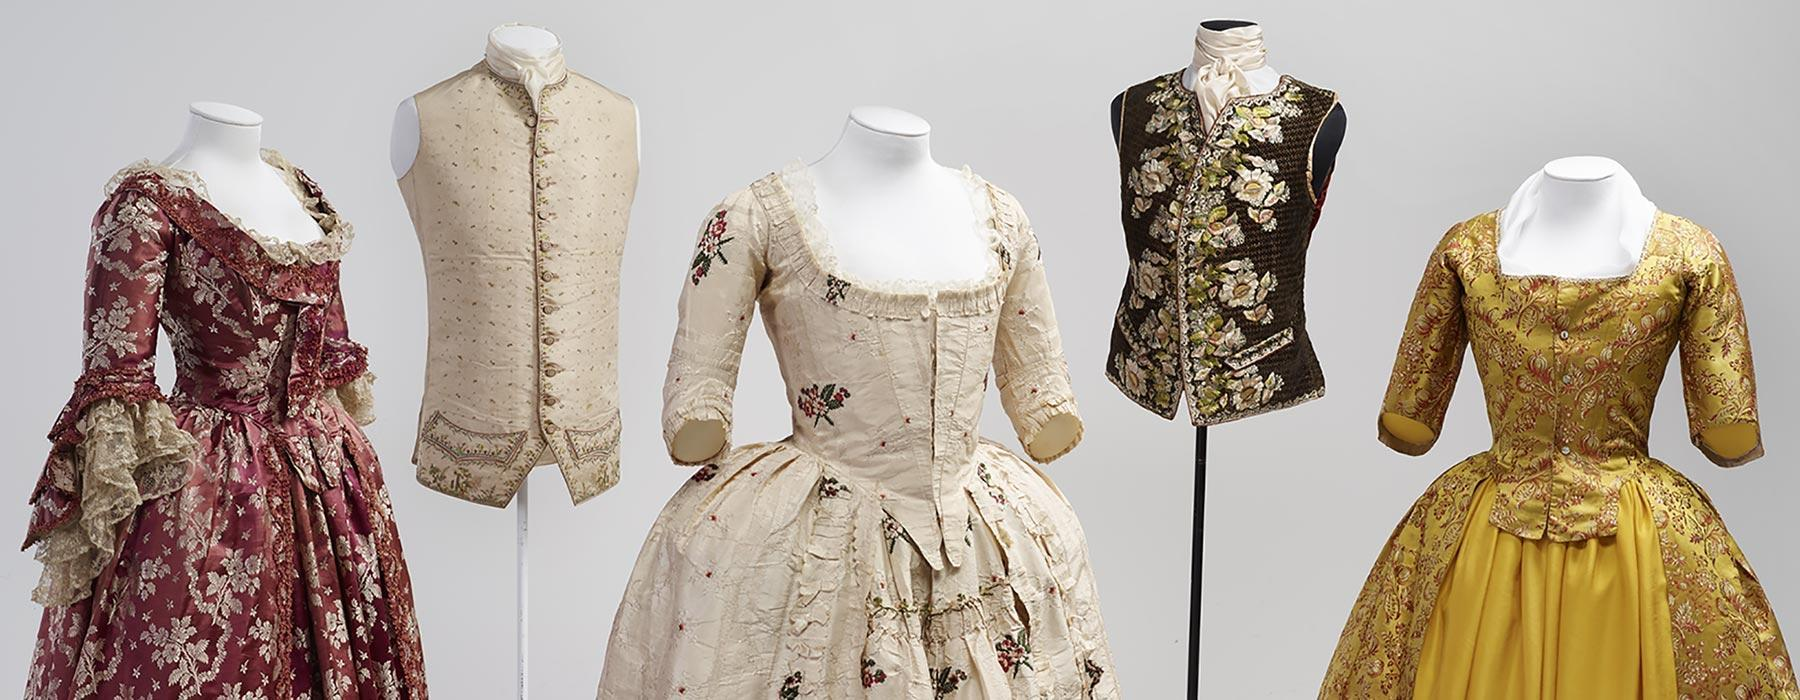 18th century splendour from Te Papa's costume collection. Photograph by Mike O'Neill. Te Papa